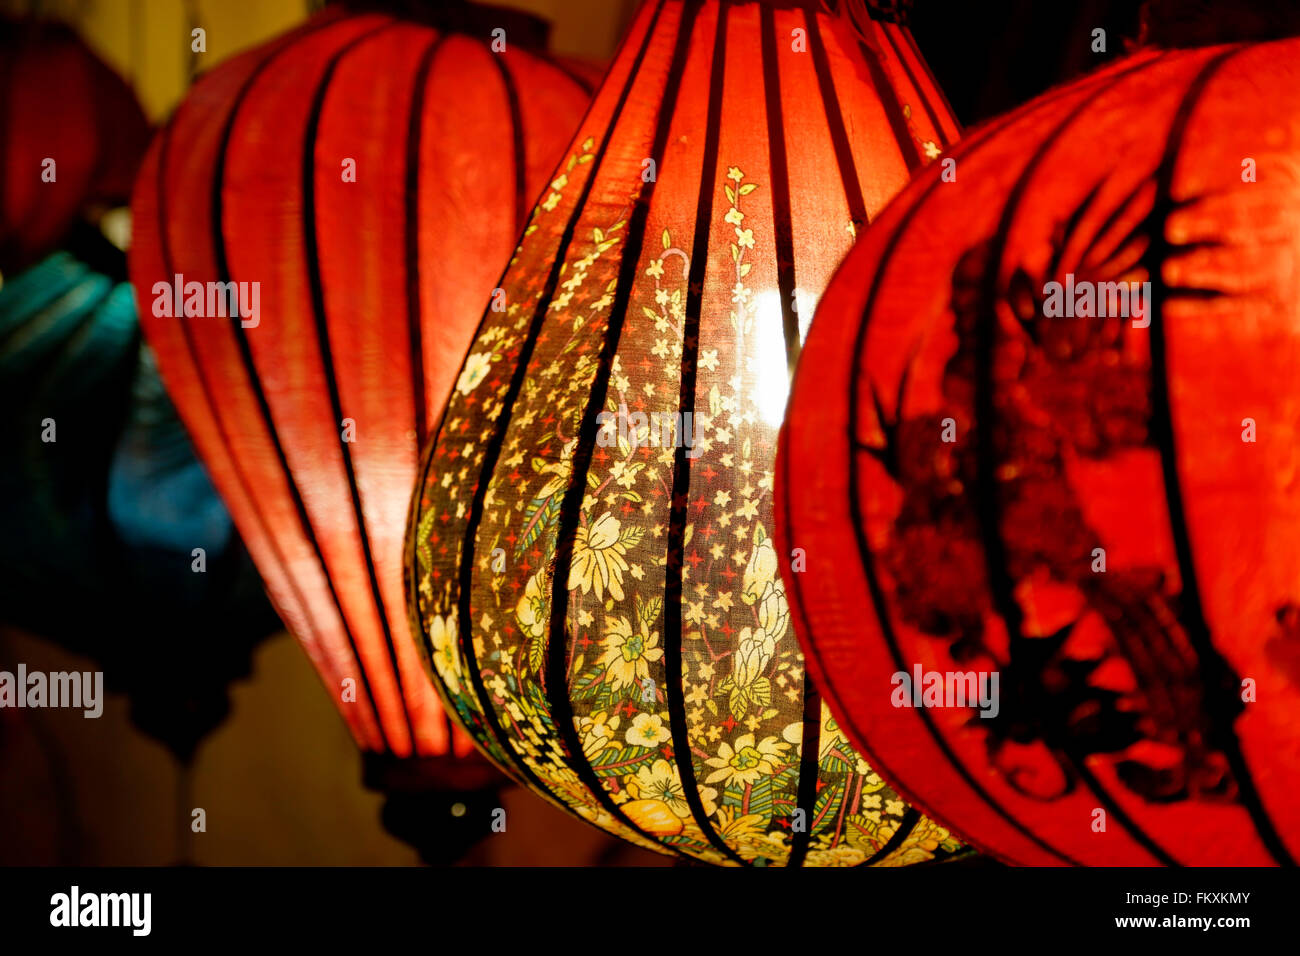 Colorful lanterns during monthly Full Moon Lantern Festival, Hoi An, Vietnam - Stock Image